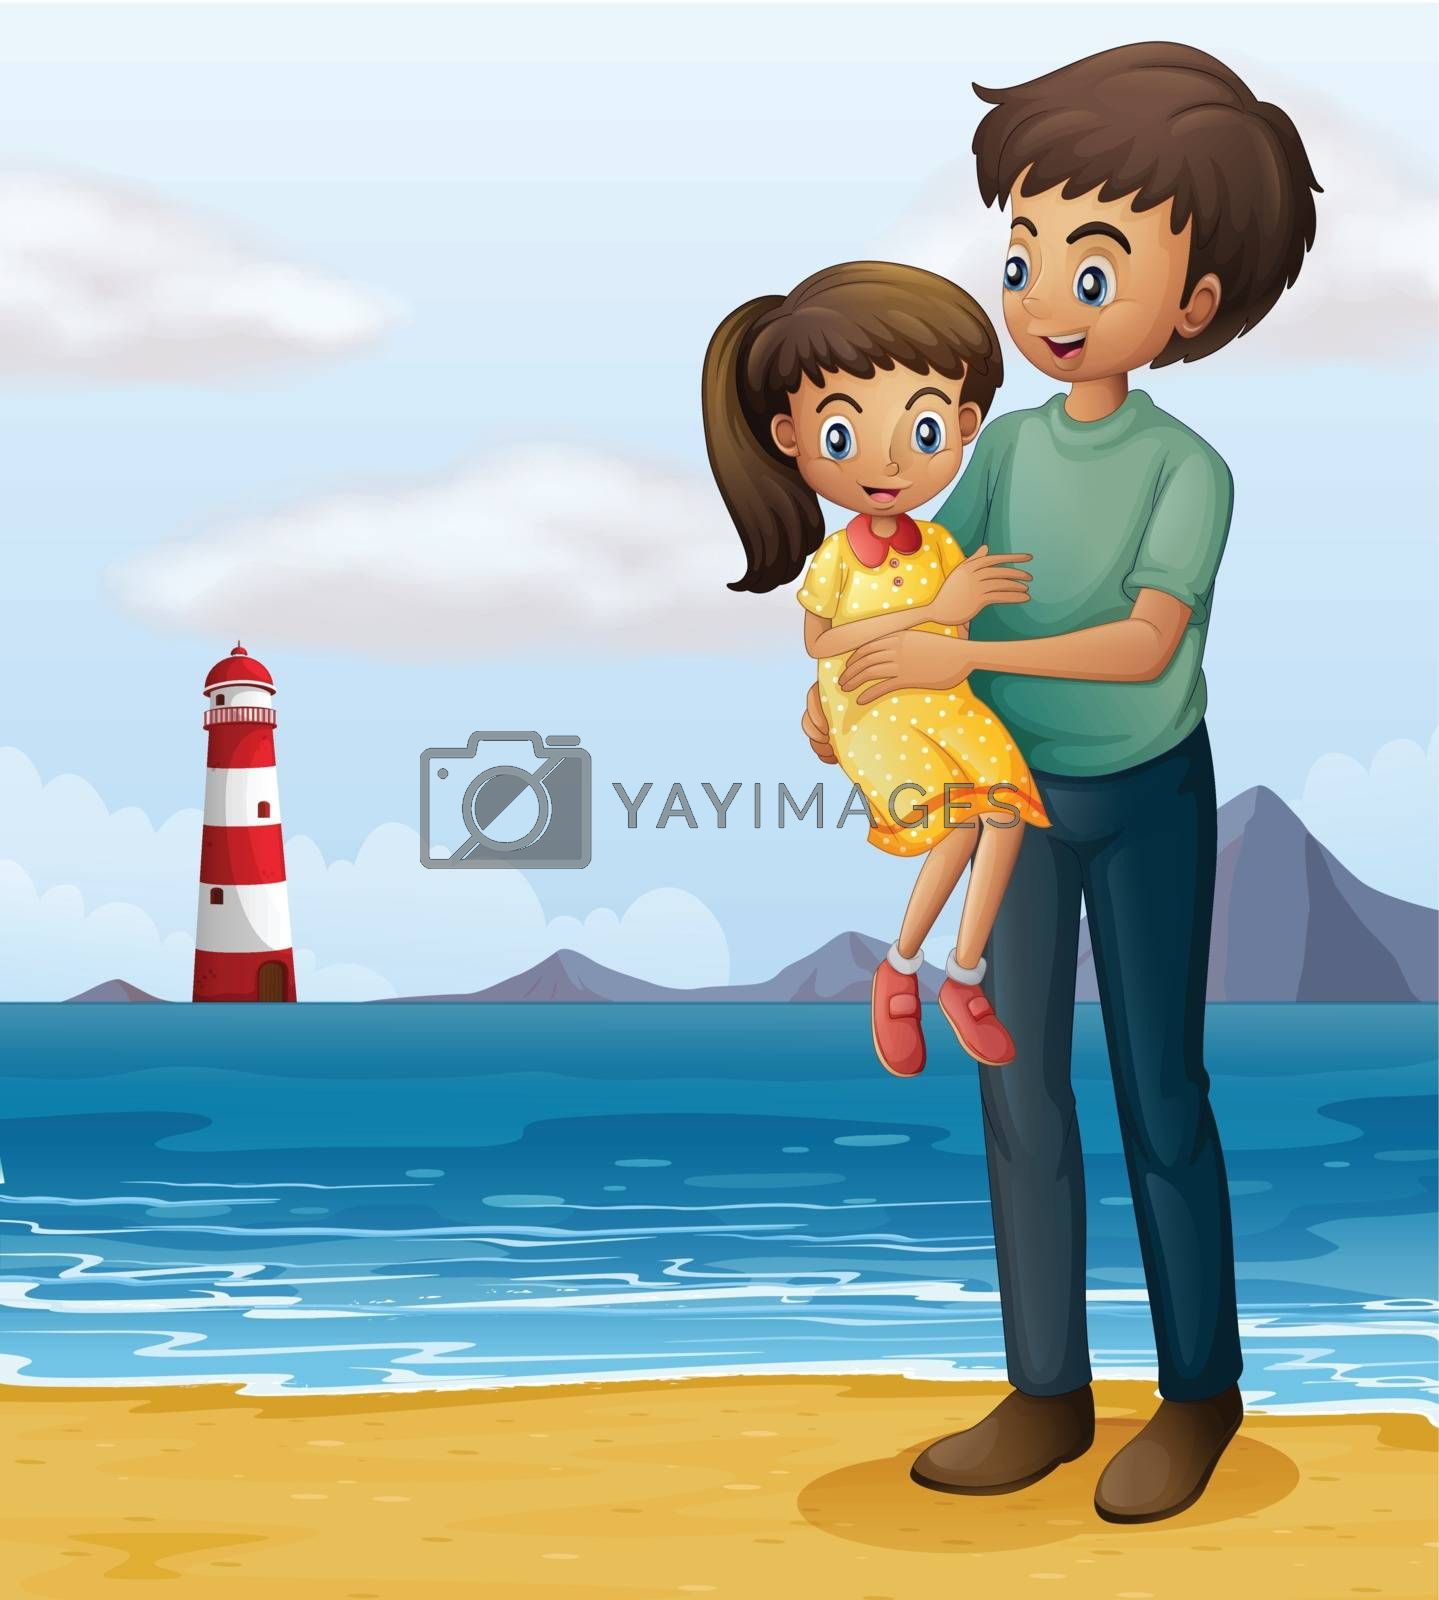 Illustration of a father and a daughter at the beach